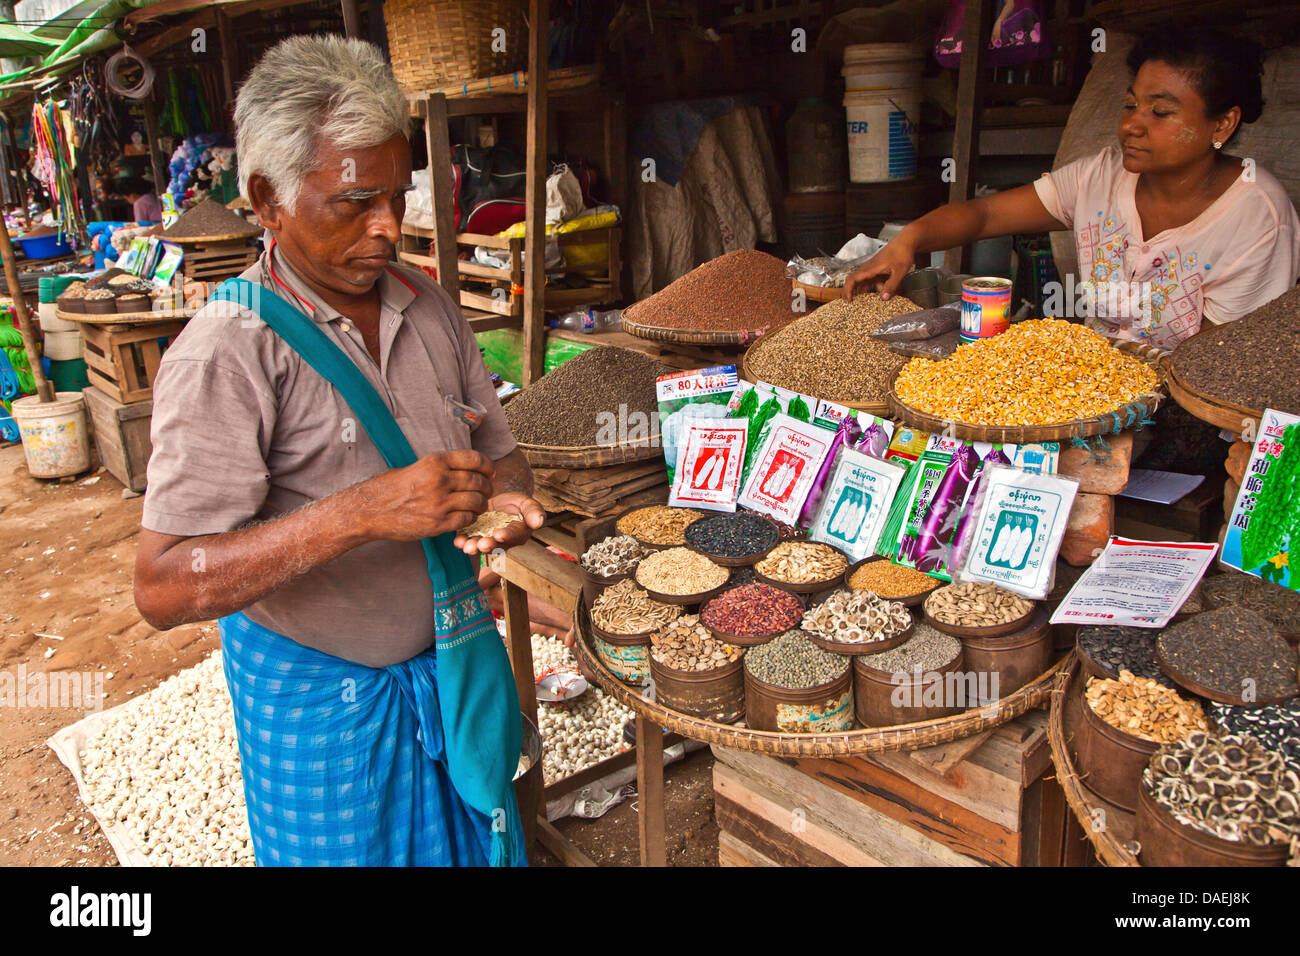 MEDICINAL SPICES and SEEDS for sale at the CENTRAL MARKET in BAGO, Burma, Bago - Stock Image